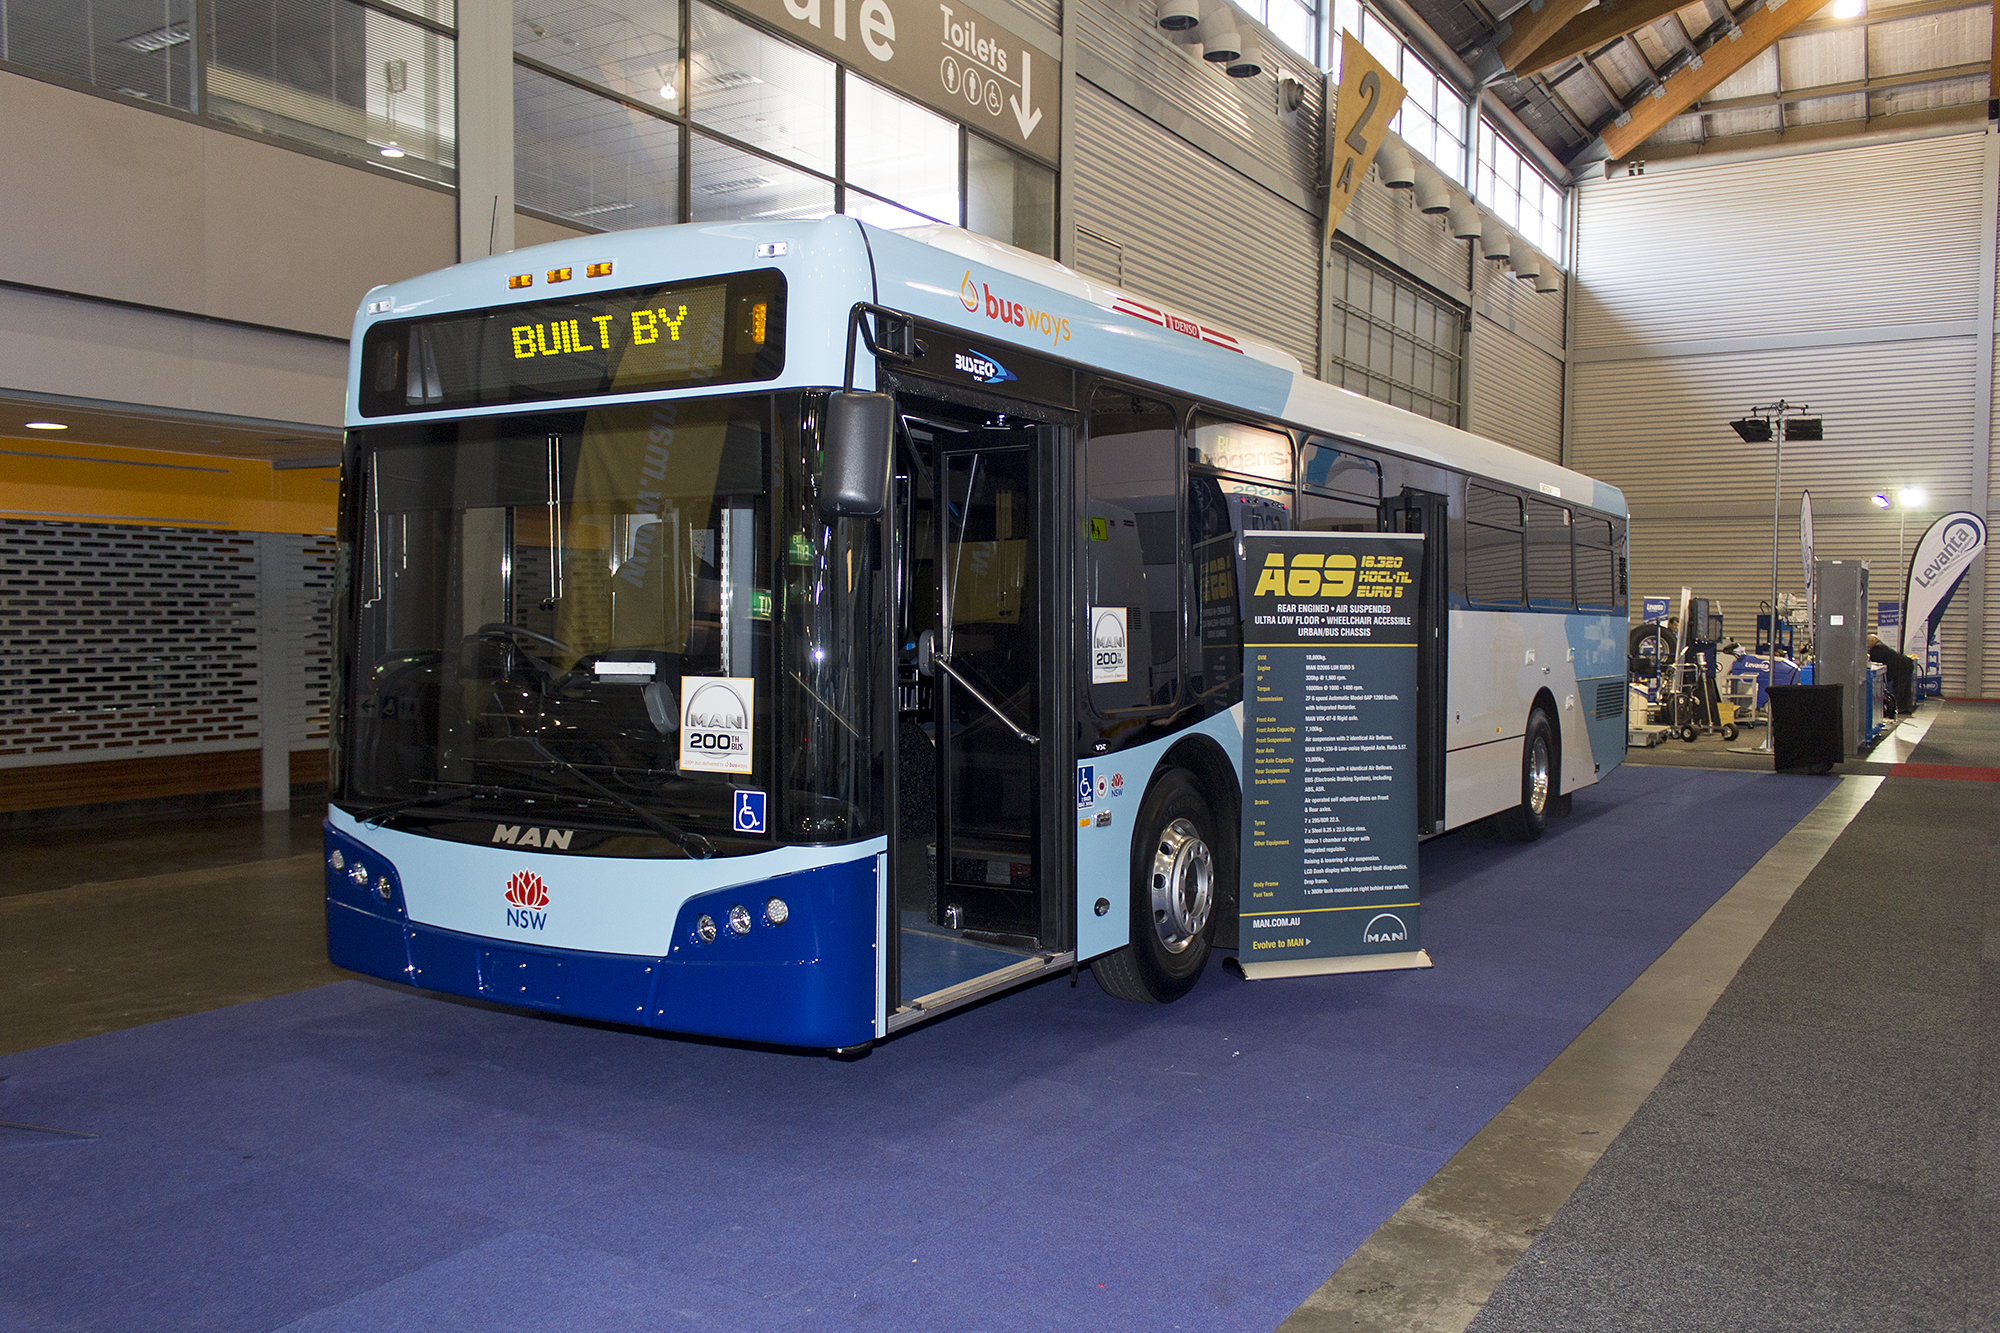 File:Busways (7433 MO) Bustech VST bodied MAN 18-320 HOCL-R